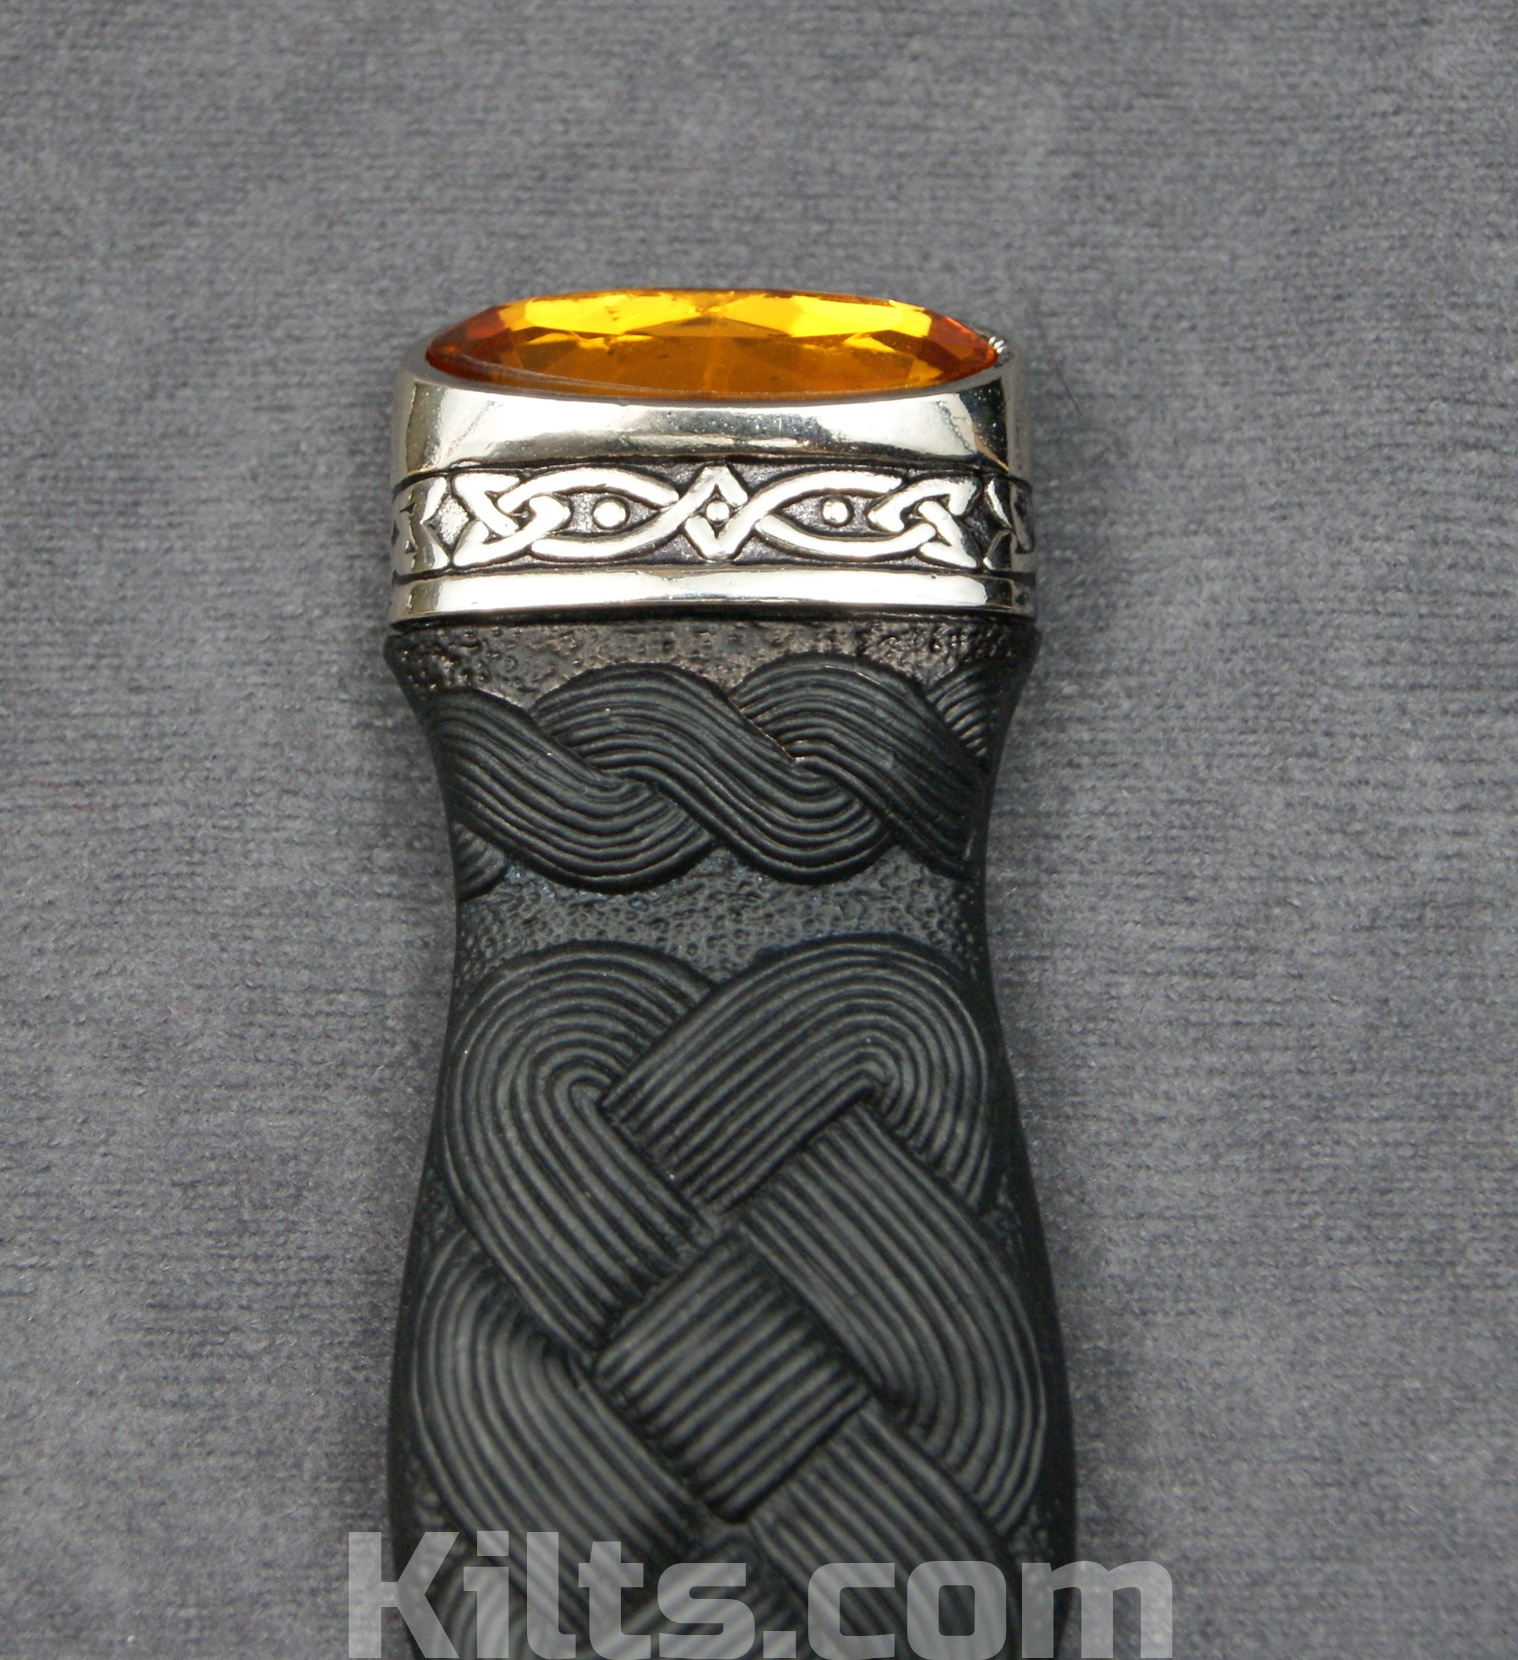 Looking for a Cairngorm Sgian Dubh or a Cairngorm Kilt Knife?